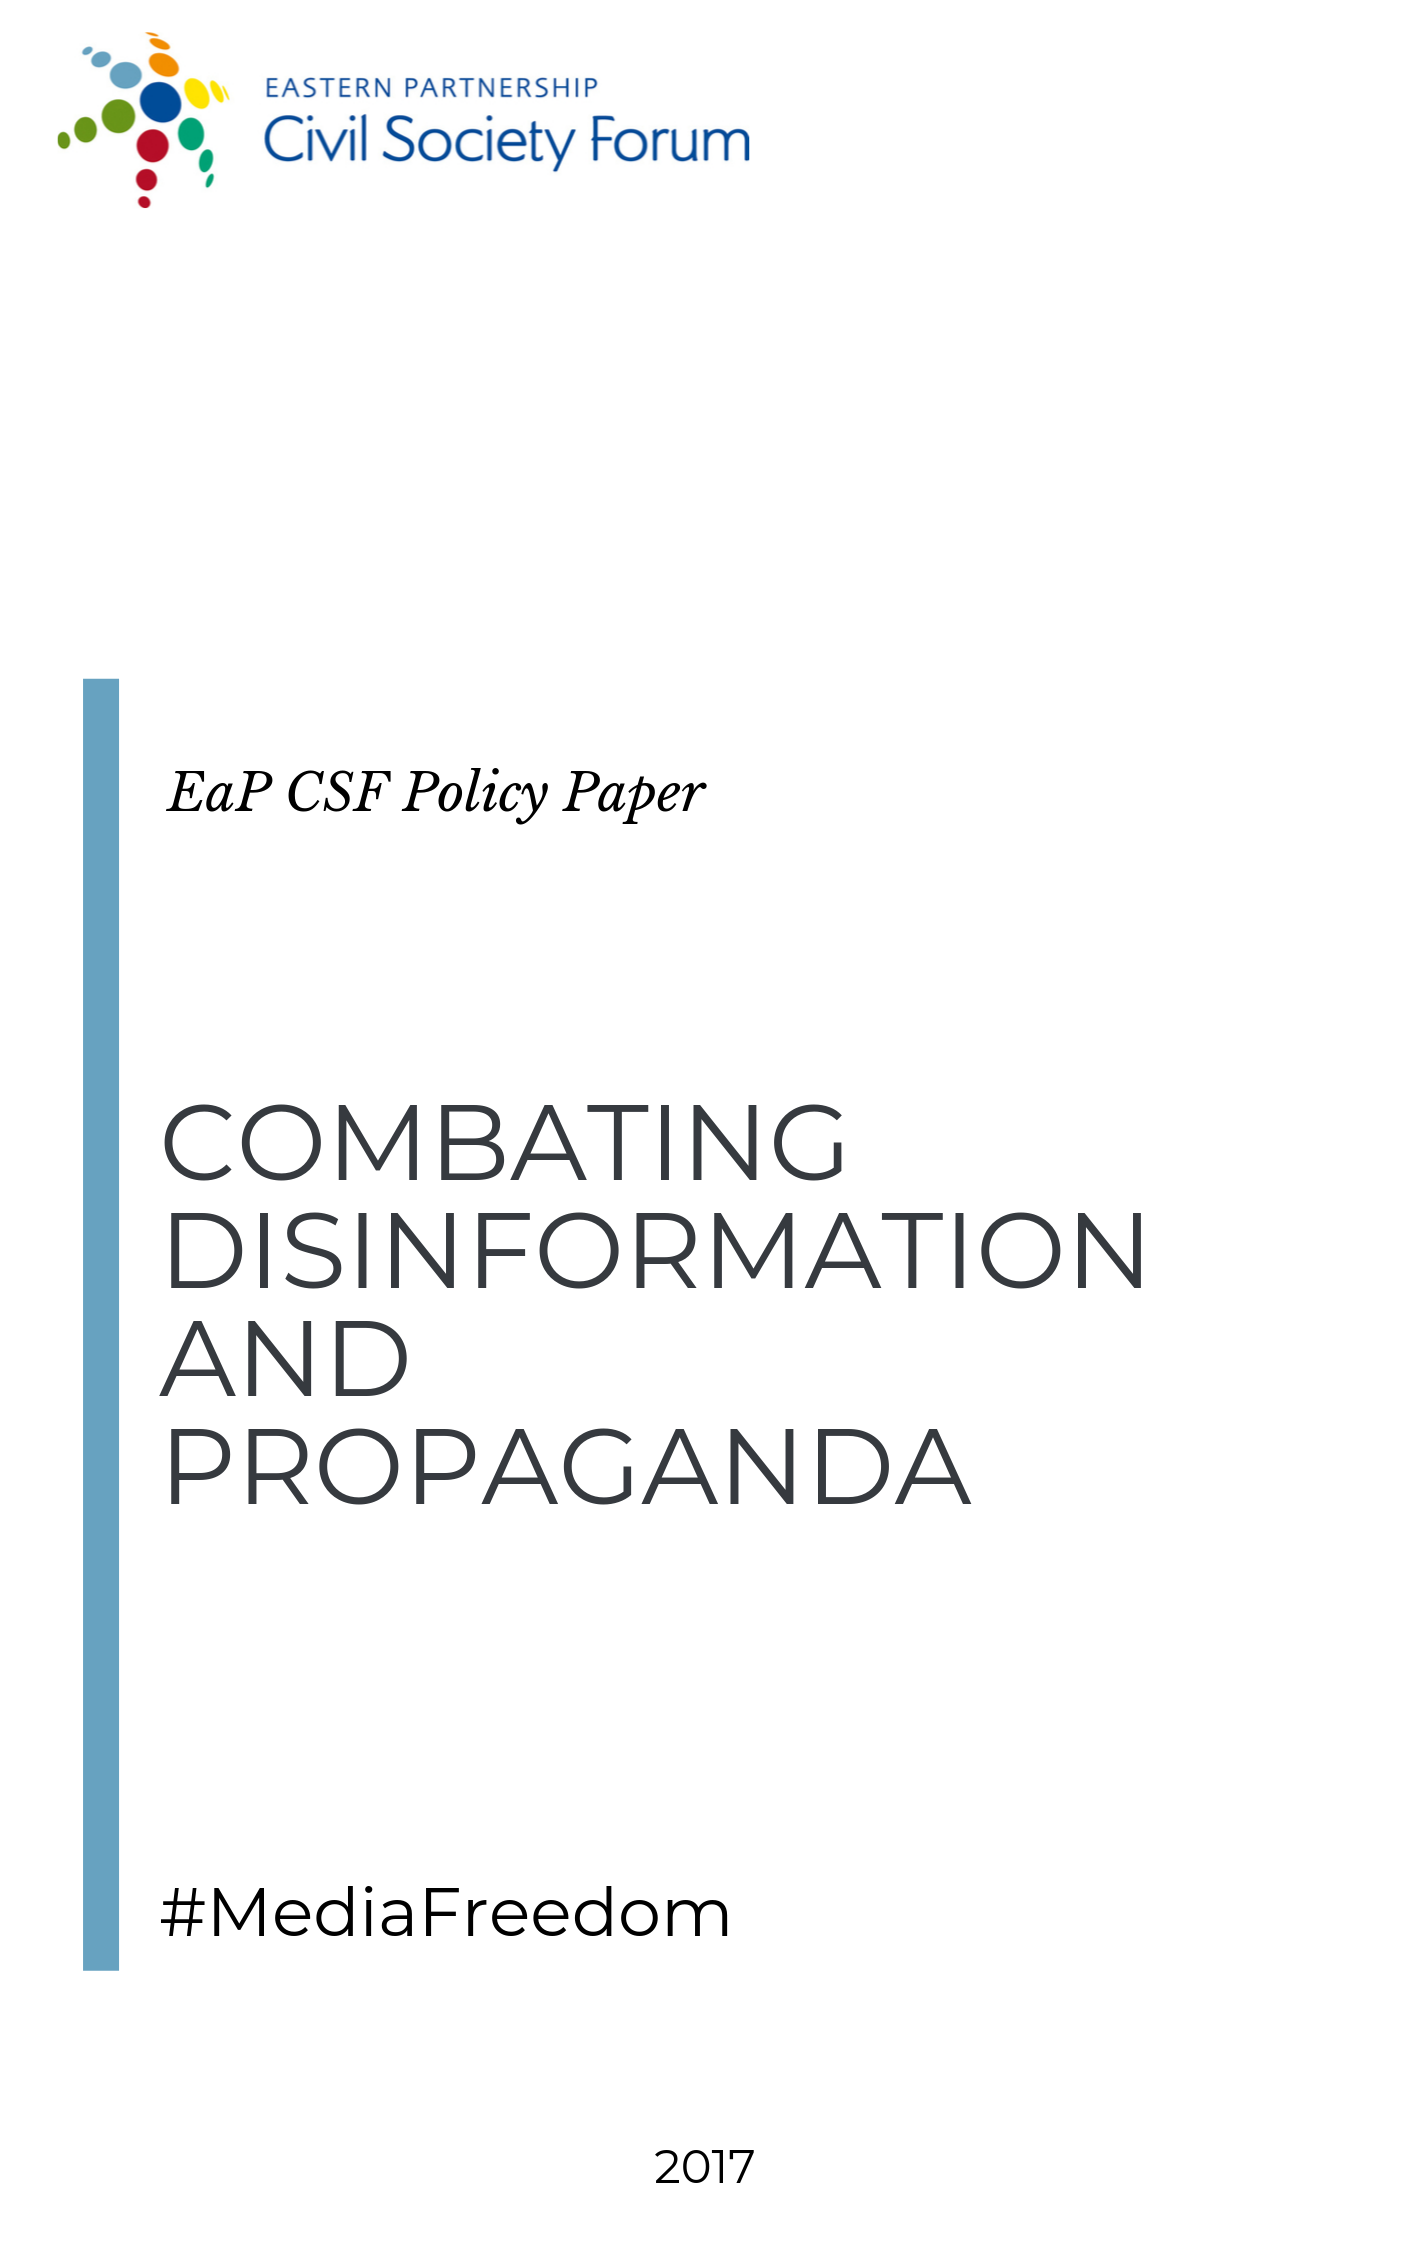 Combating Disinformation and Propaganda